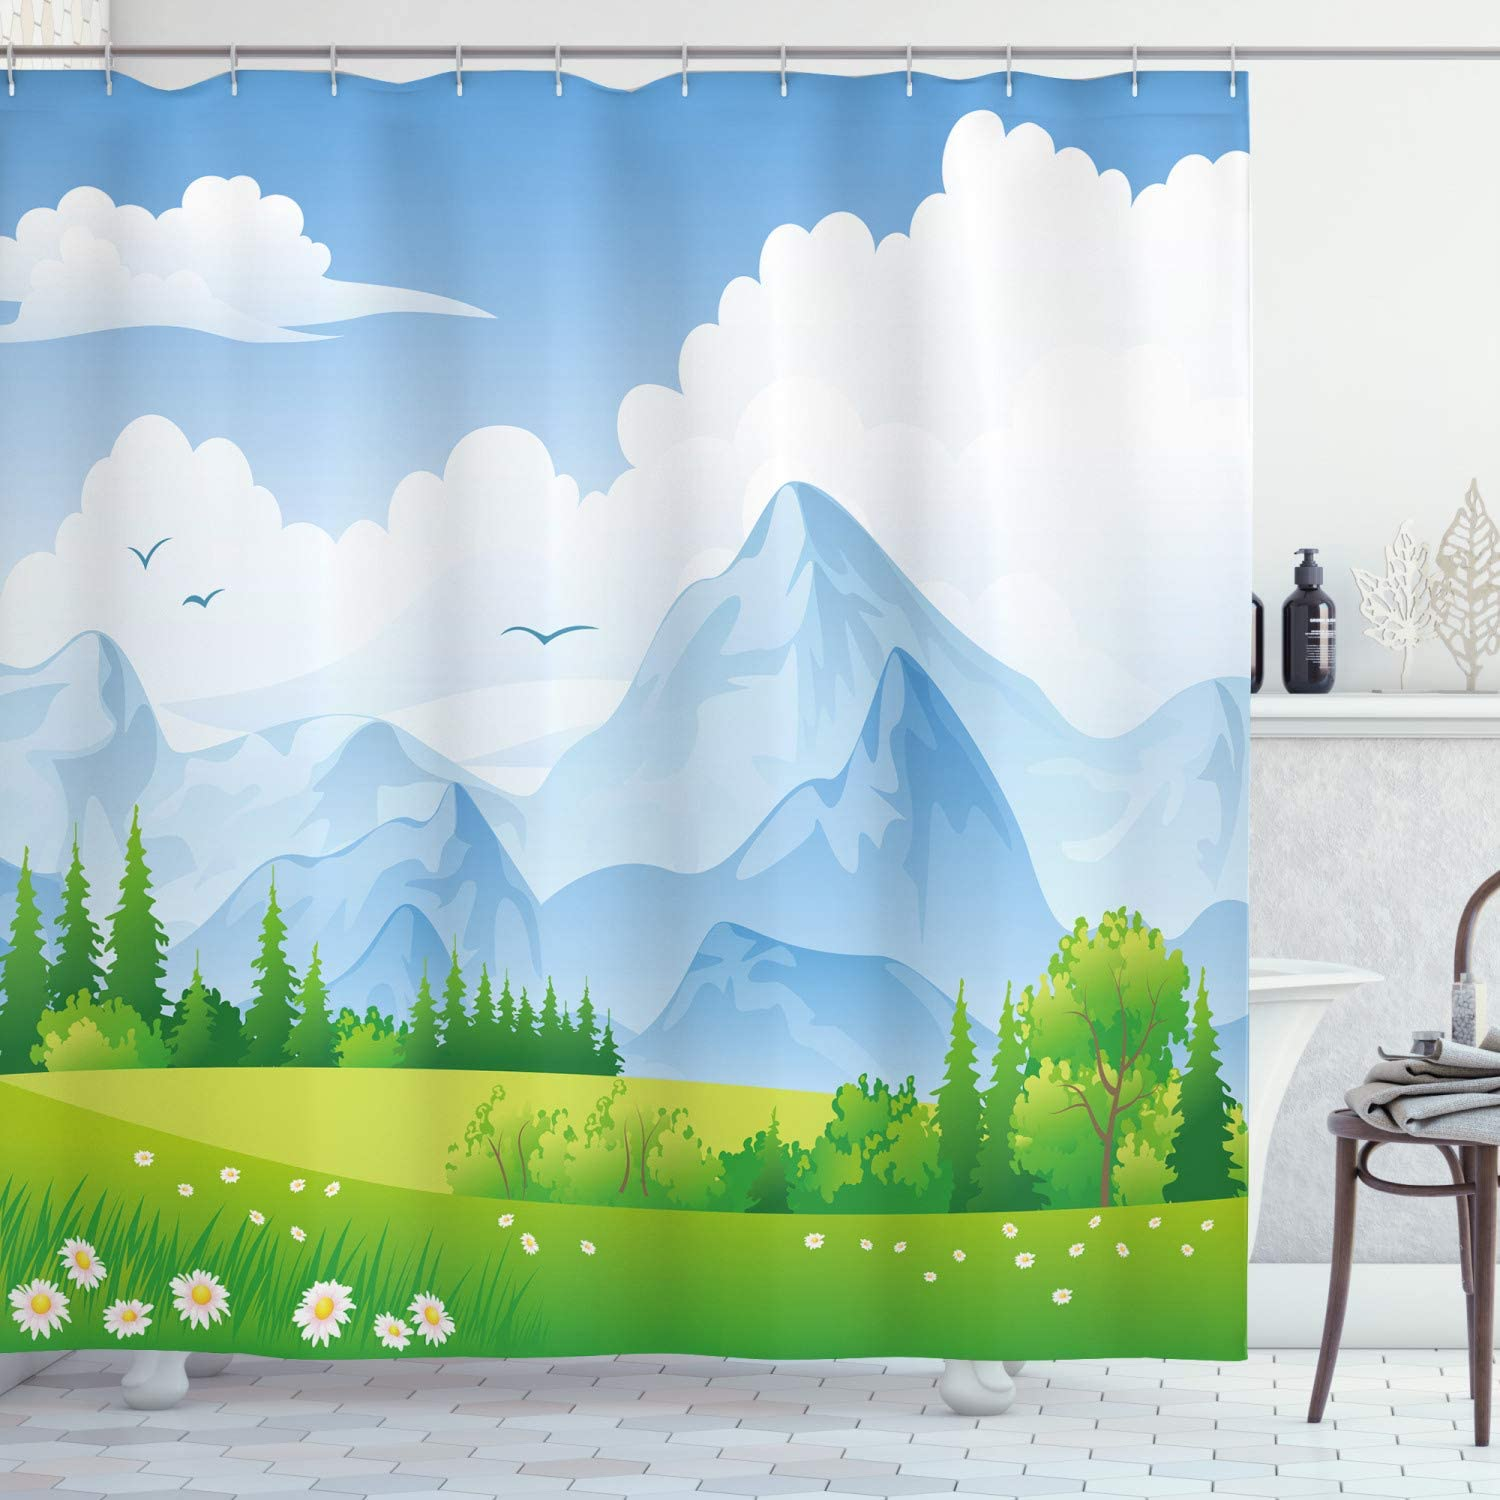 Ambesonne Nature Shower Curtain, Summer Meadow with Daisy Flower Field with Mountain Happy Eco Landscape, Cloth Fabric Bathroom Decor Set with Hooks, 70